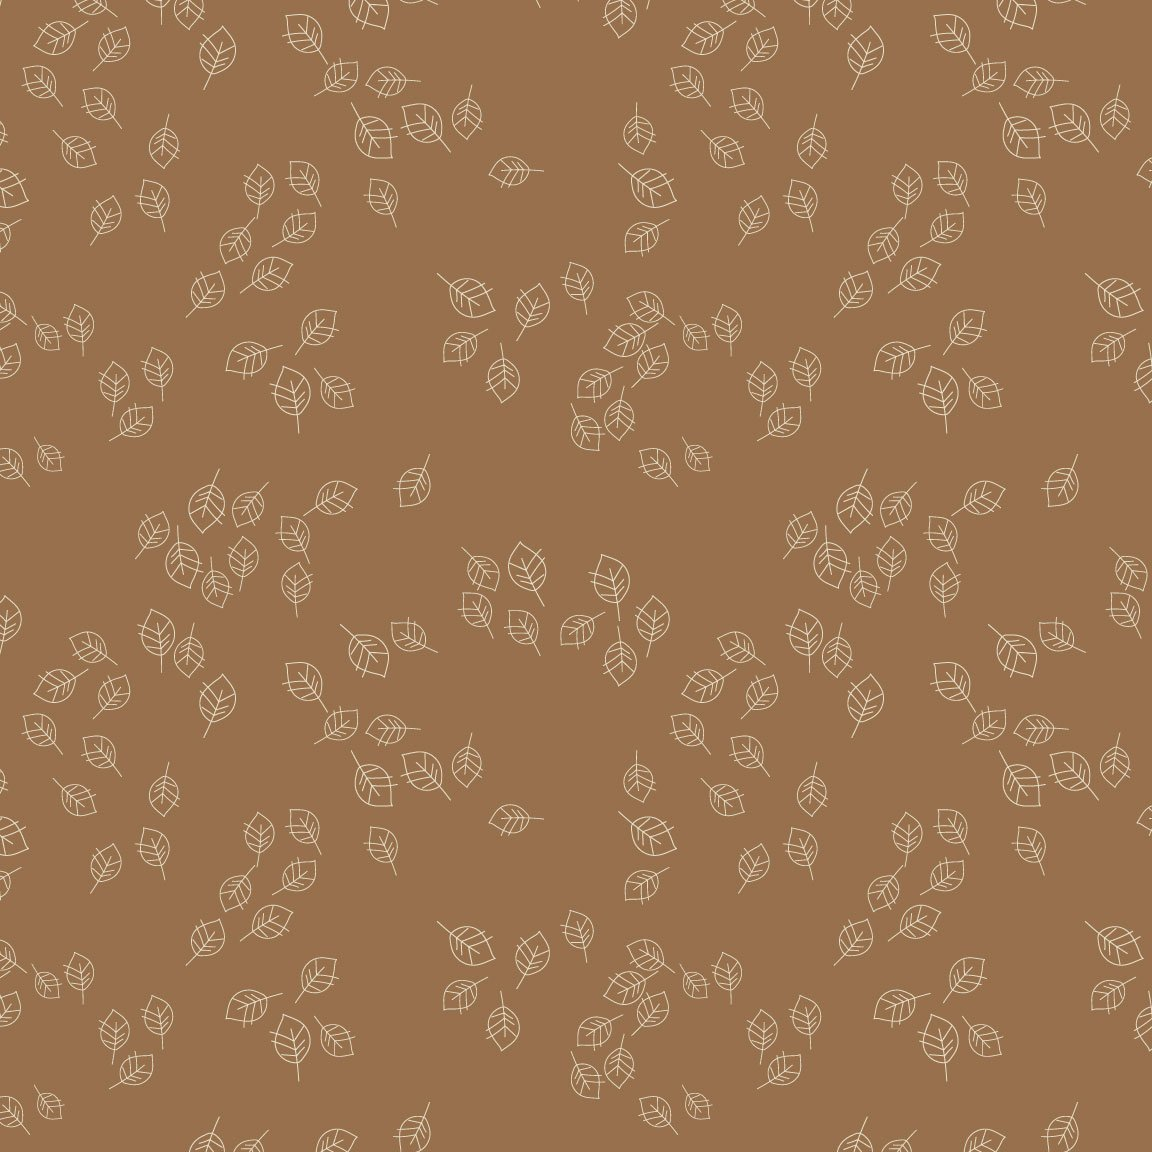 Leaves - Brown